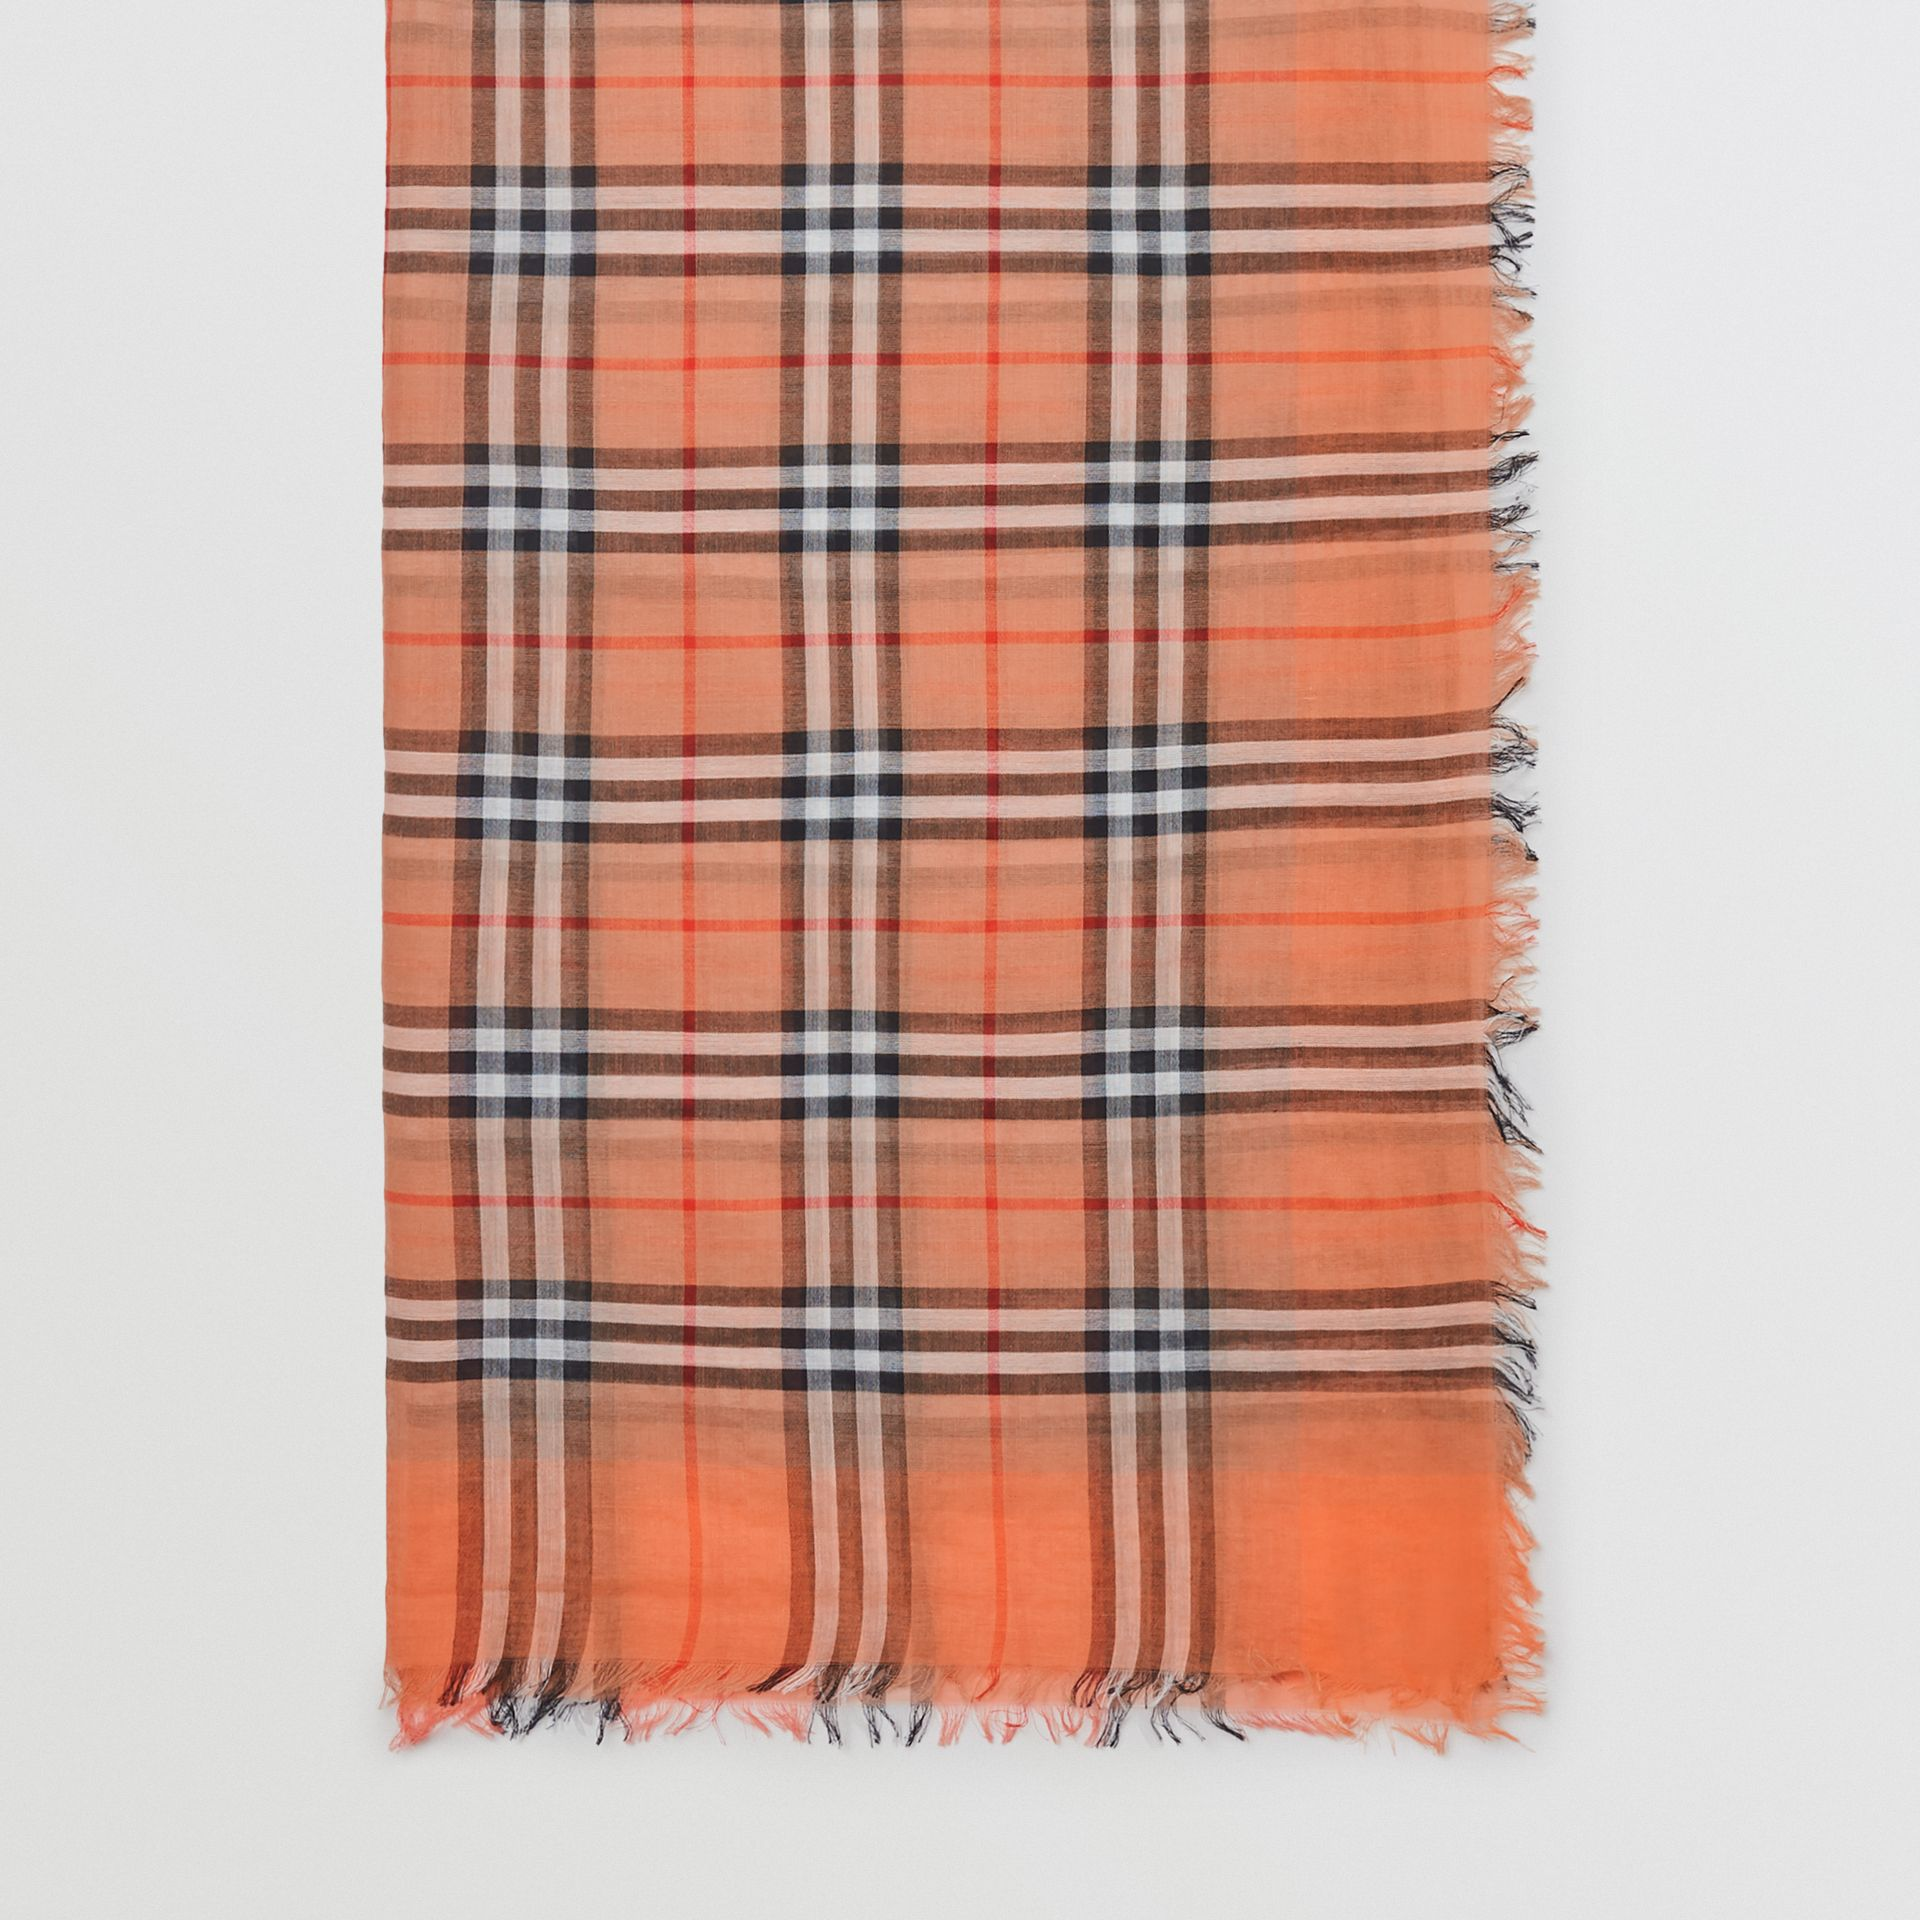 Two-tone Vintage Check Cotton Square Scarf in Coral Rose | Burberry - gallery image 4